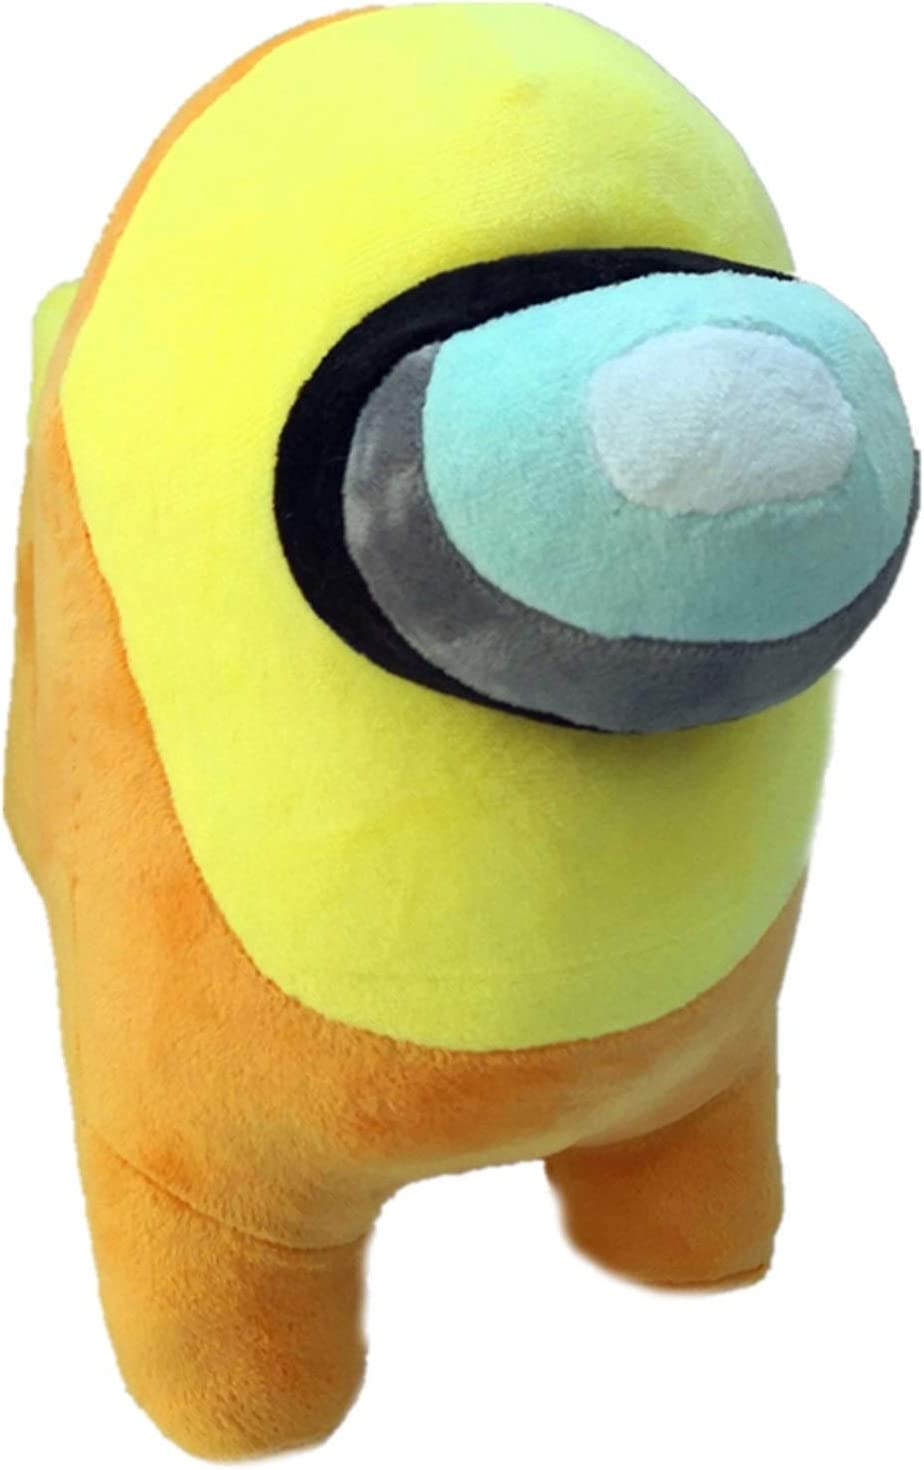 Among Us Plush Toys Plushie Animal Toy 12 Pcs Among Us Merch Stuff Funny Little Animal Gifts for Super Game Fans Young and Children